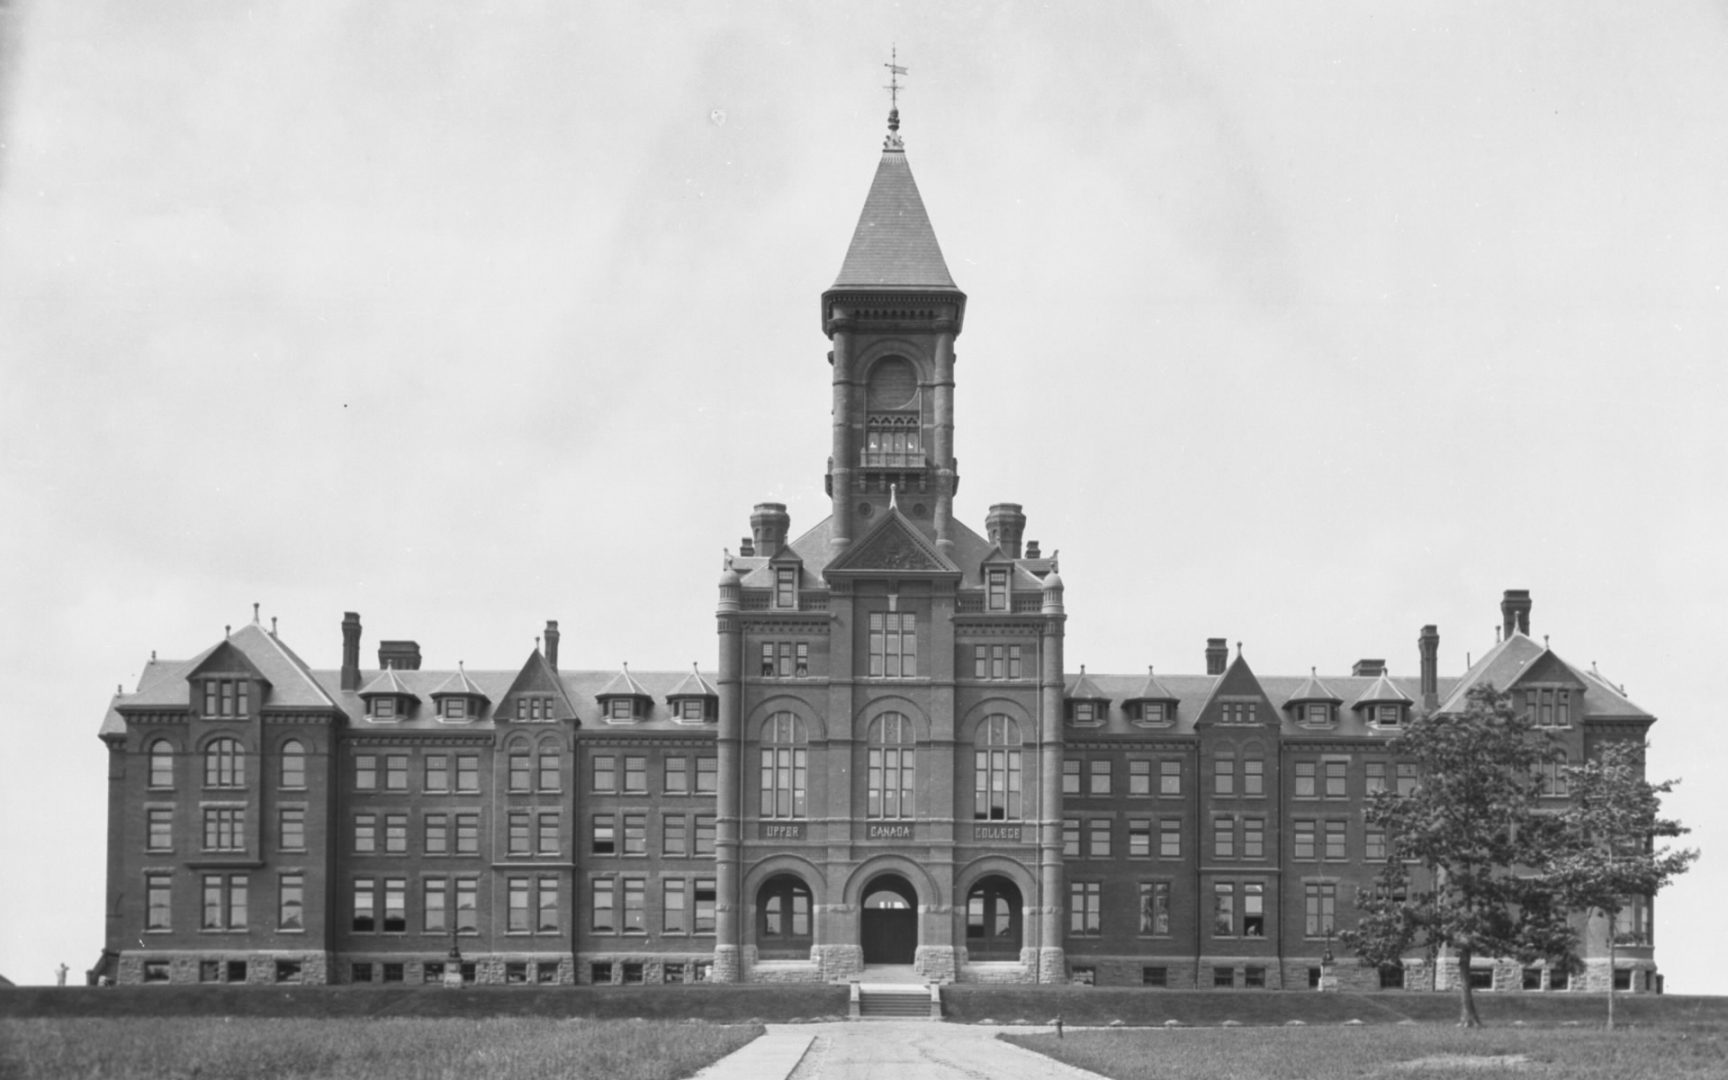 Upper Canada College (opened 1891), Lonsdale Rd., n. side, betw. Oriole Parkway & Forest Hill Rd.